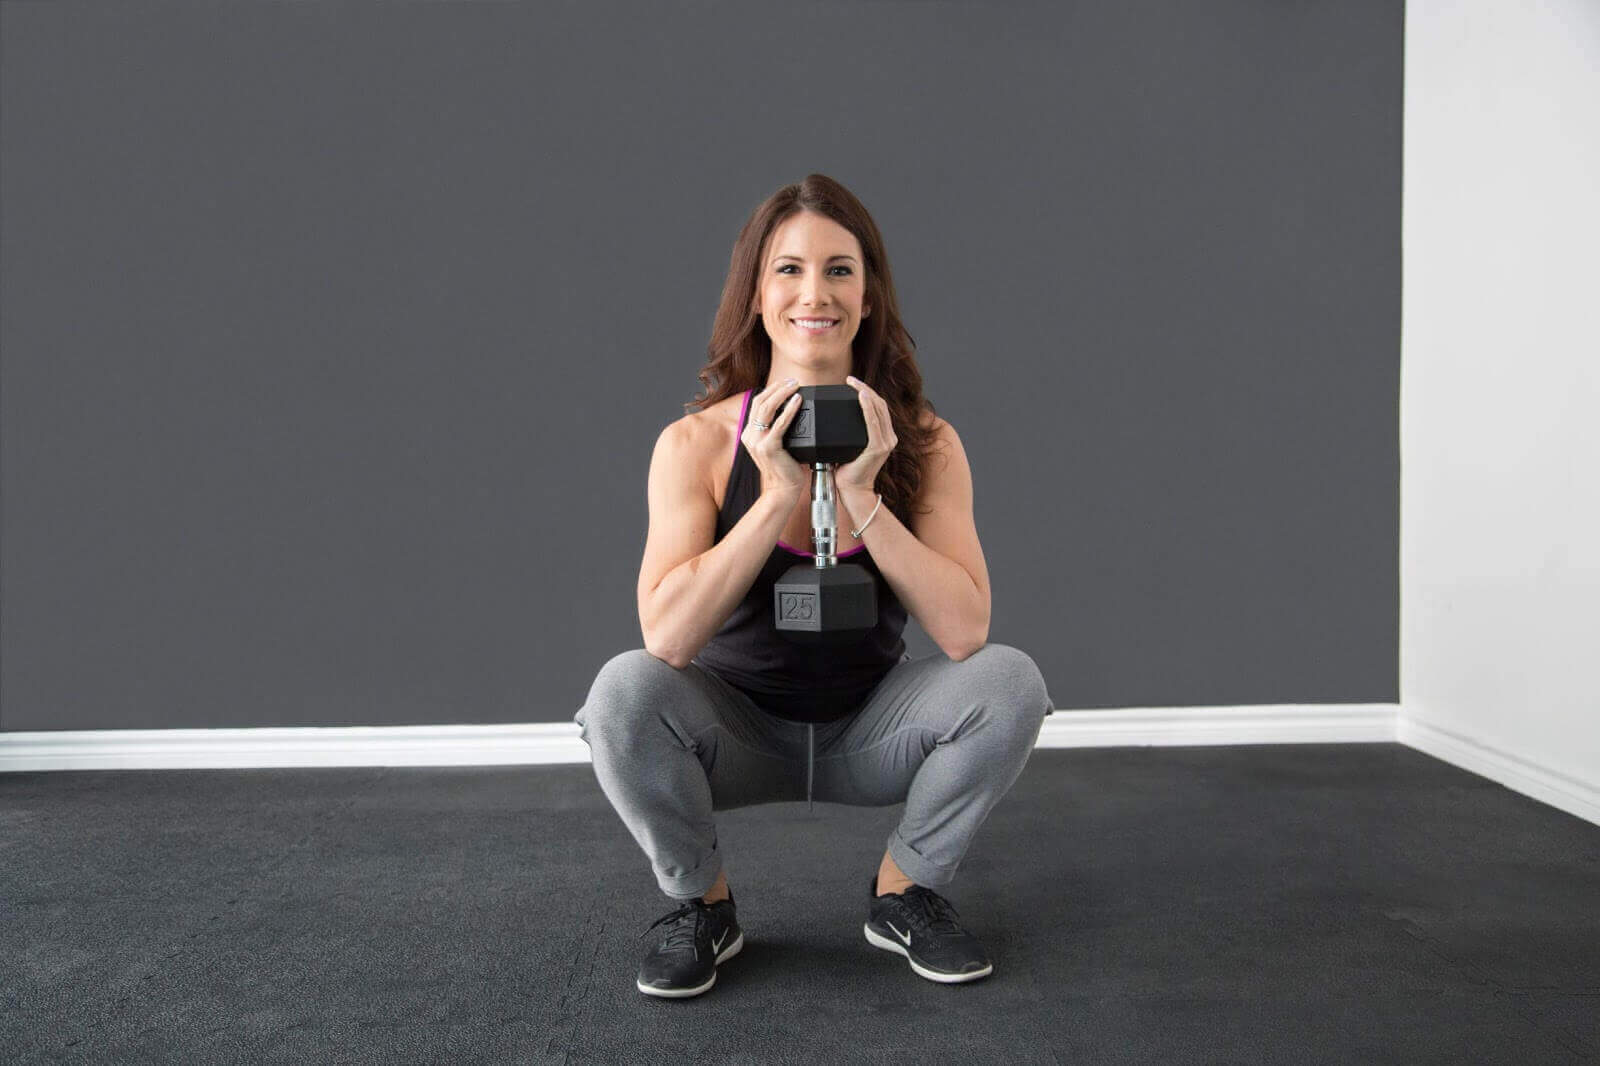 HIIT Circuits for Women That You Can Do at Home